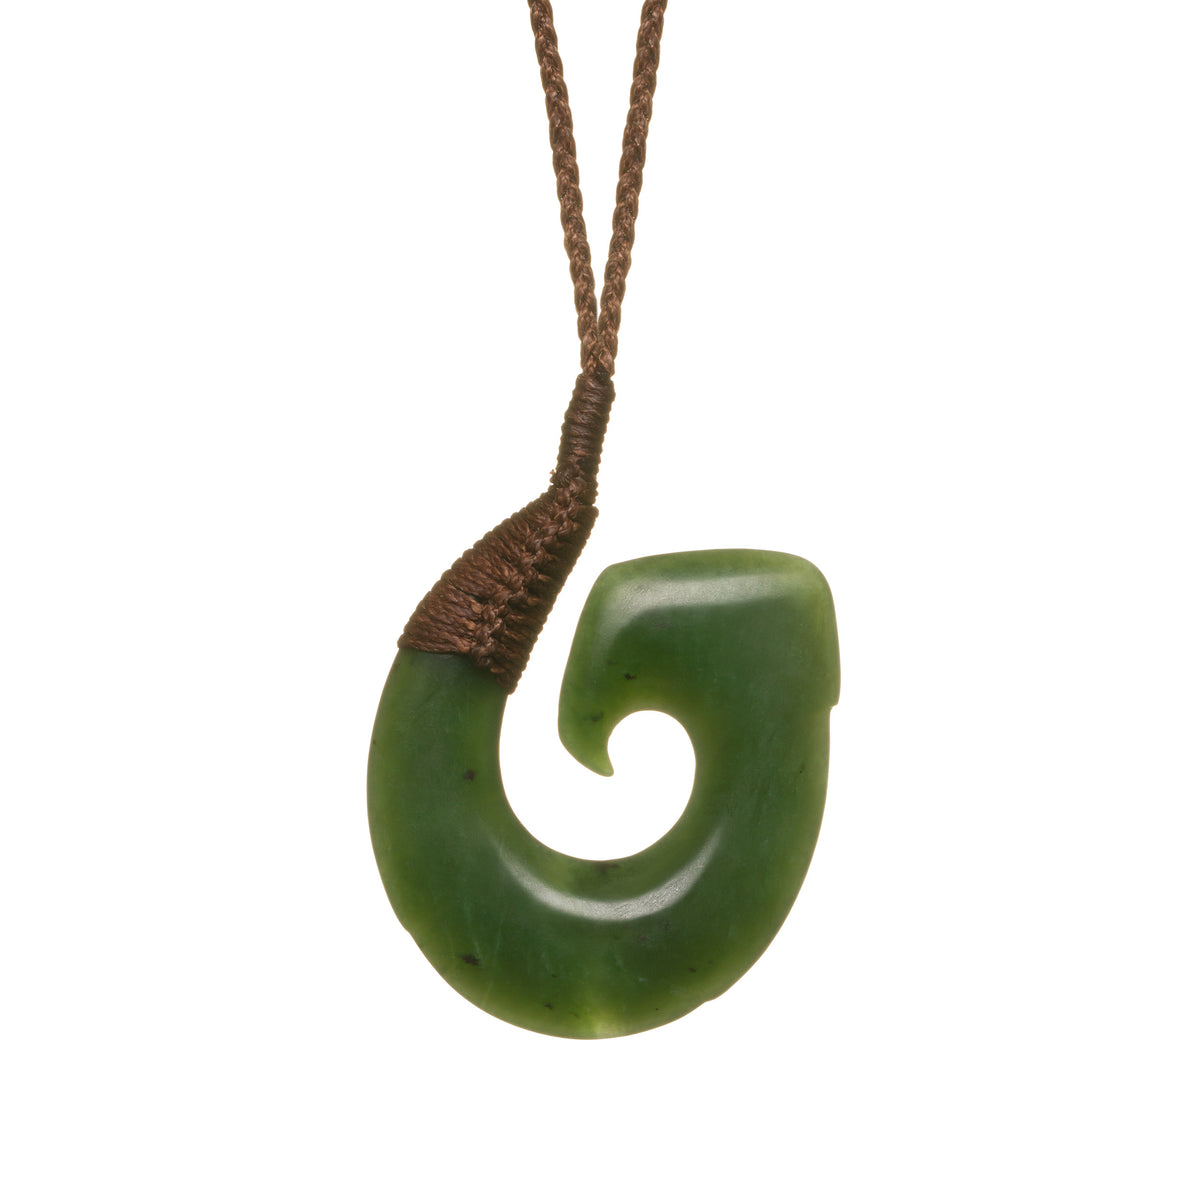 New Zealand Pounamu / 45mm x 35mm